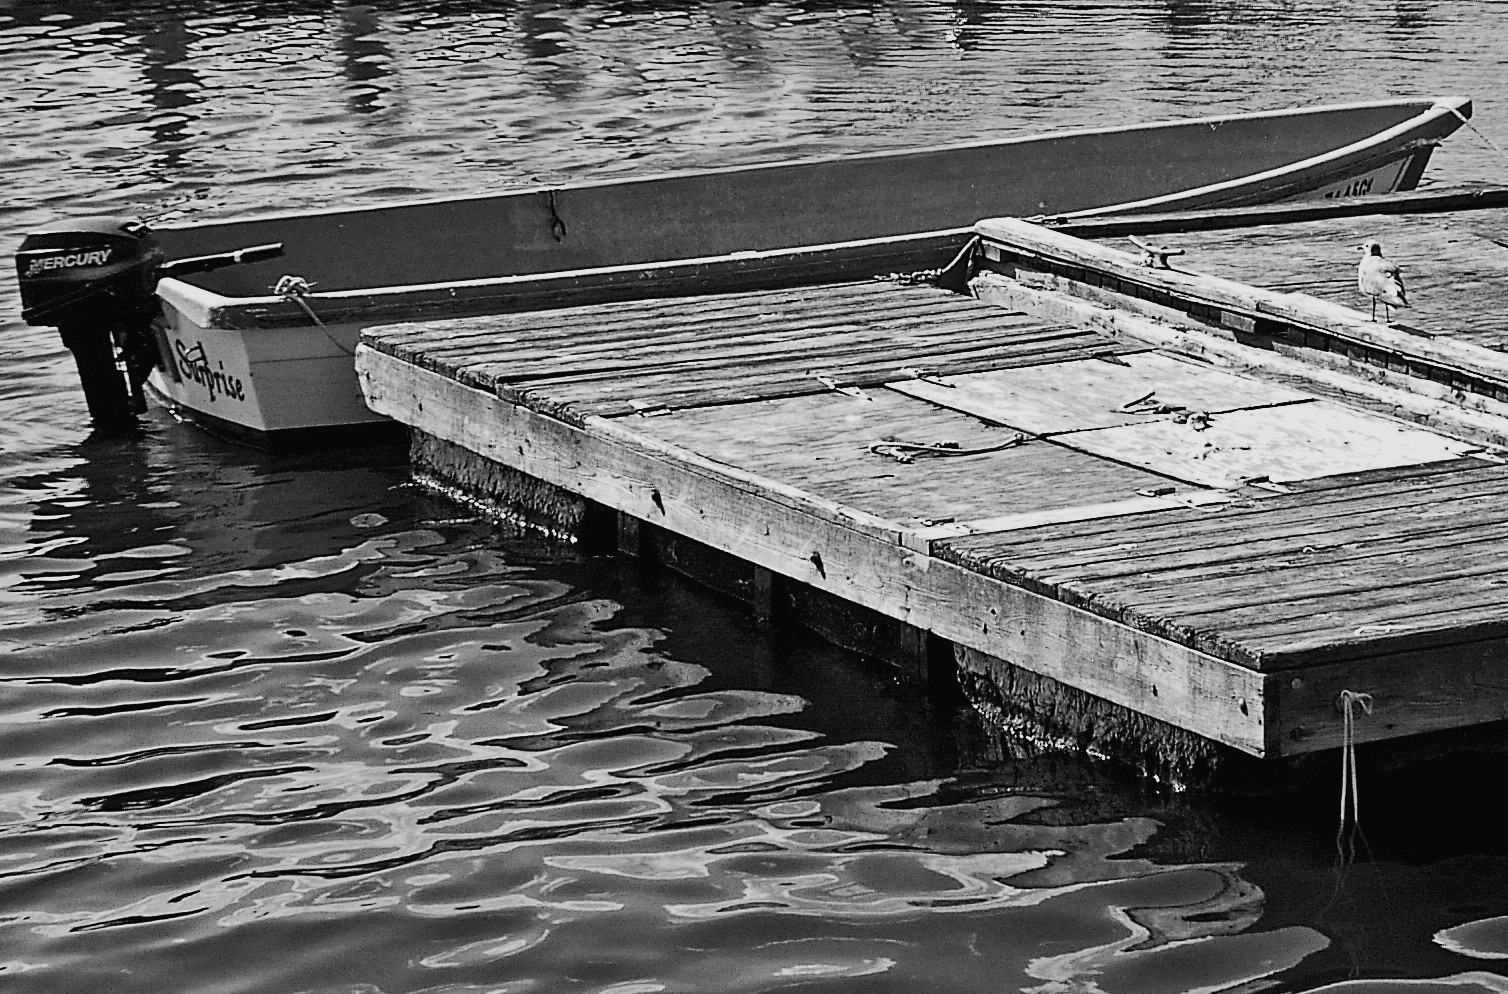 Black & White Floating Dock & Gull